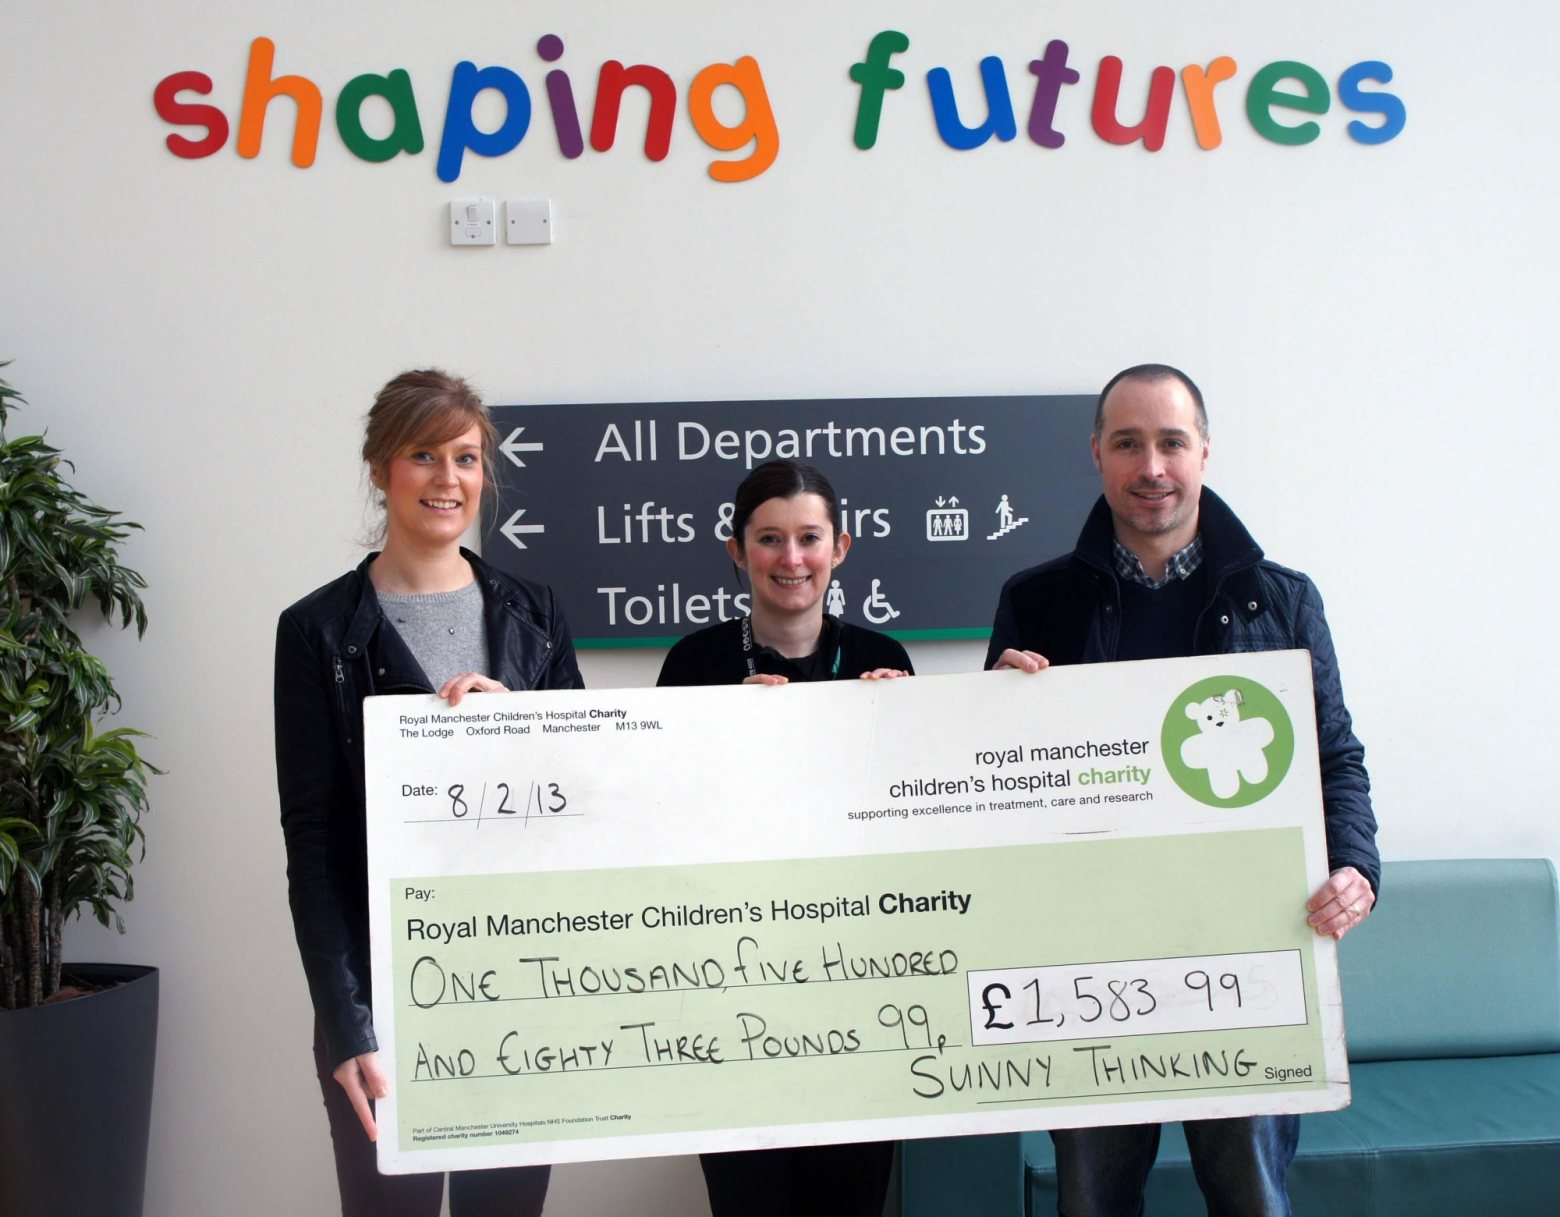 Sunnythinking for rmch charity